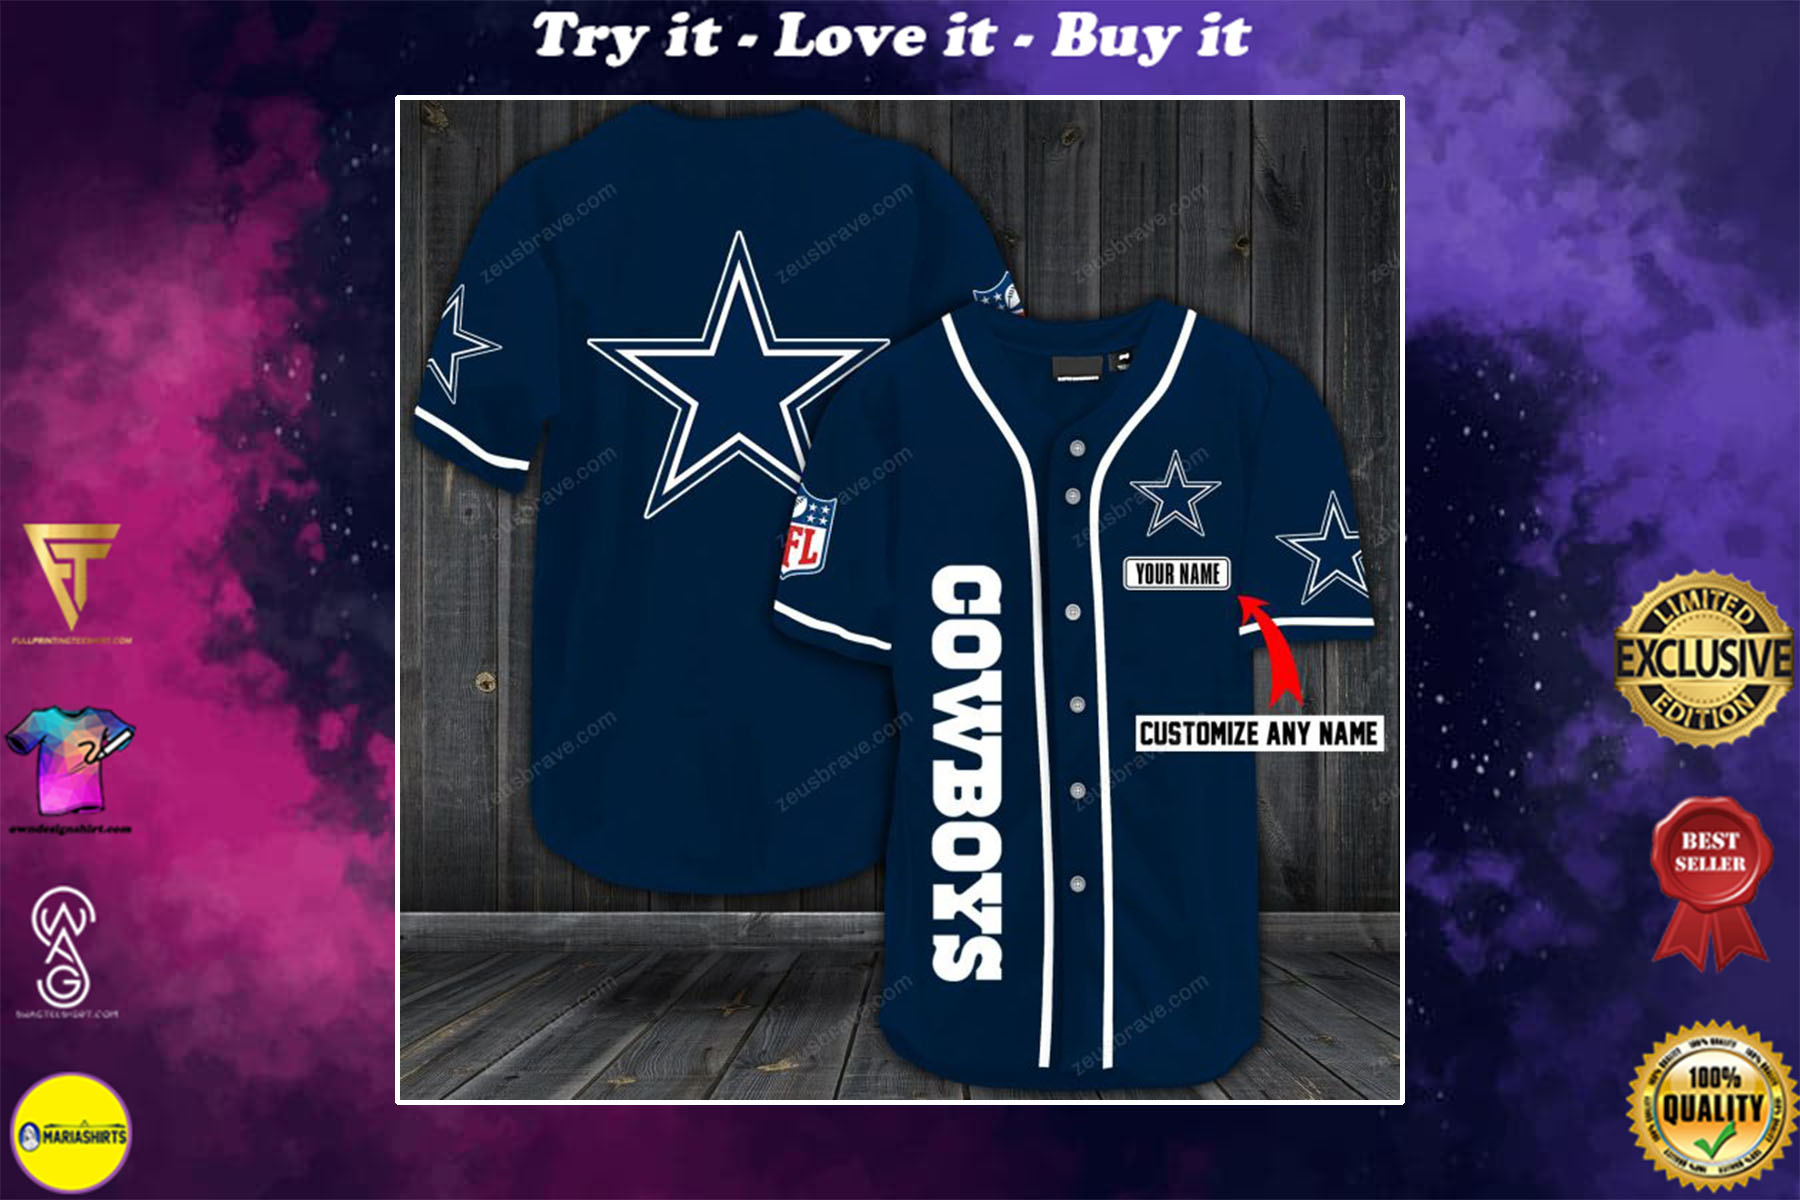 [special edition] personalized name jersey dallas cowboys shirt - maria